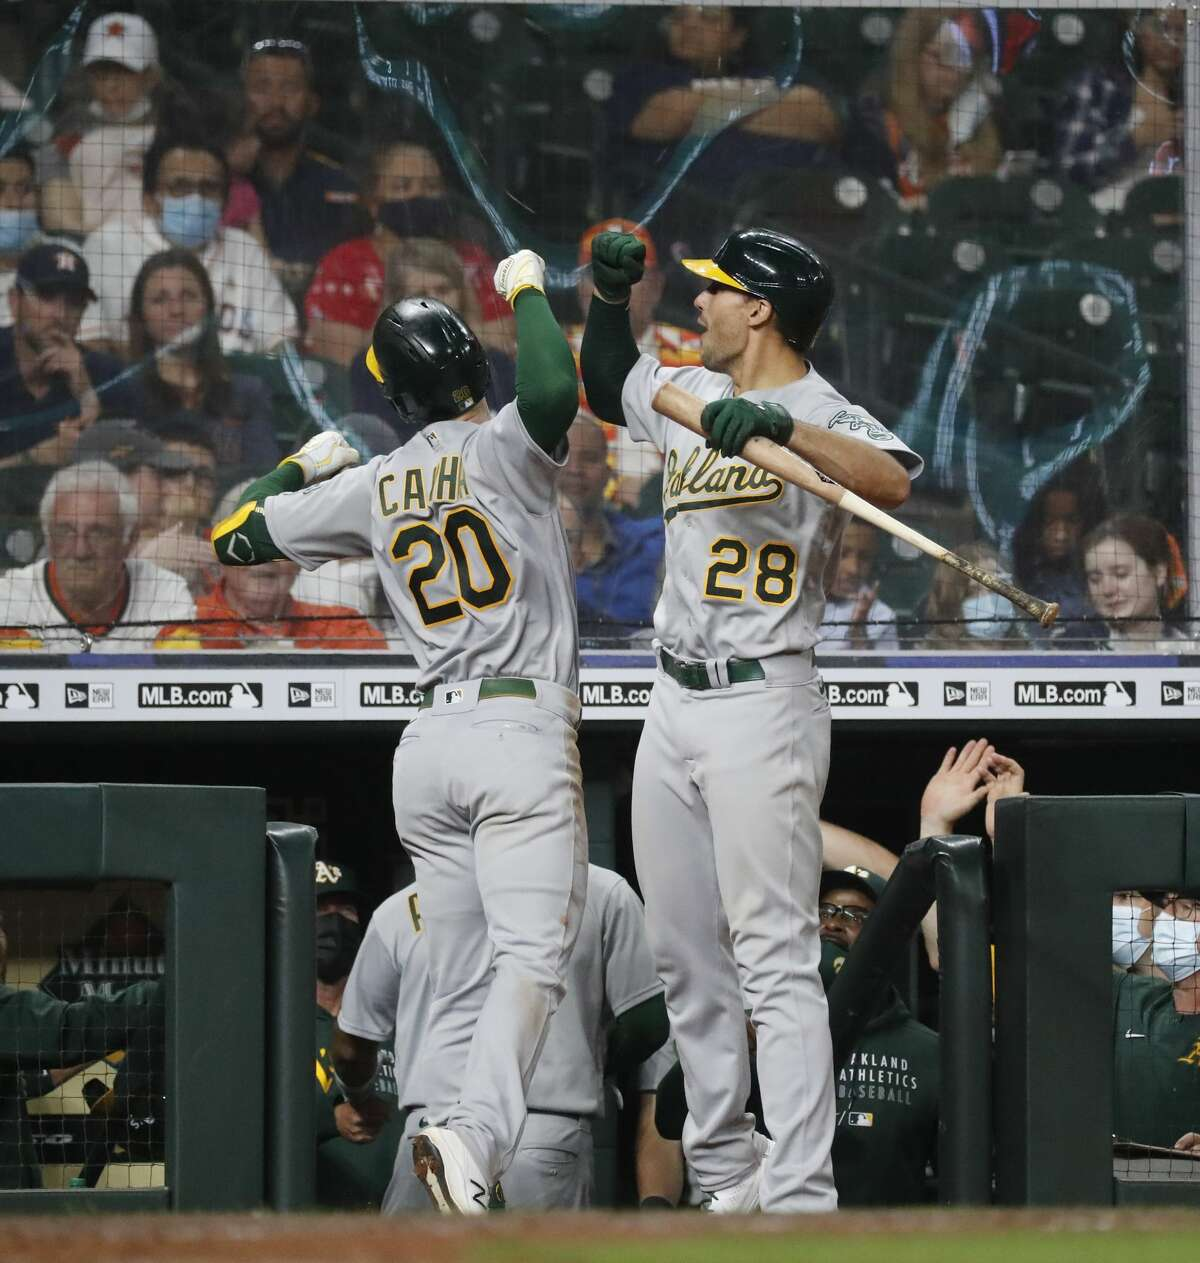 Oakland Athletics Mark Canha (20) celebrates his two-run home run off of Houston Astros relief pitcher Joe Smith with Matt Olson (28) during the ninth inning of an MLB baseball game at Minute Maid Park, in Houston, Friday, April 9, 2021.